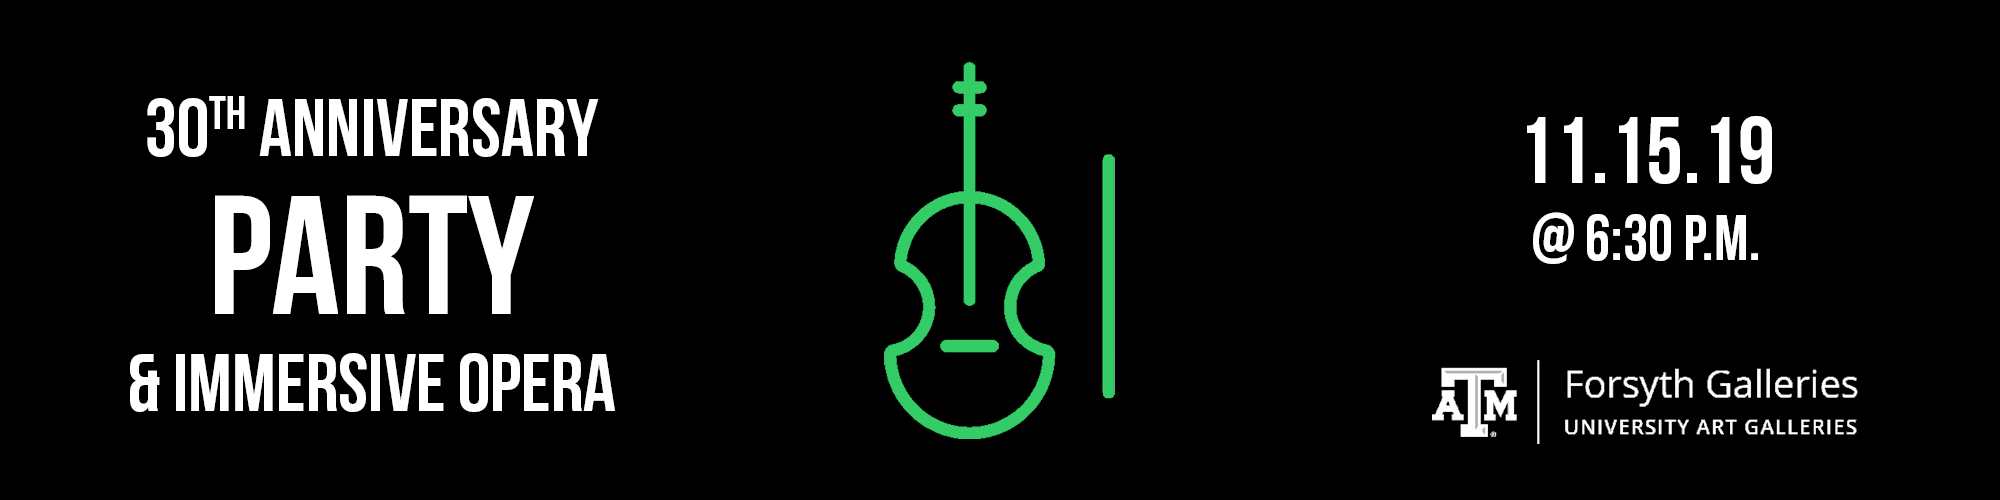 Black background, grenn icon of a stand up violin